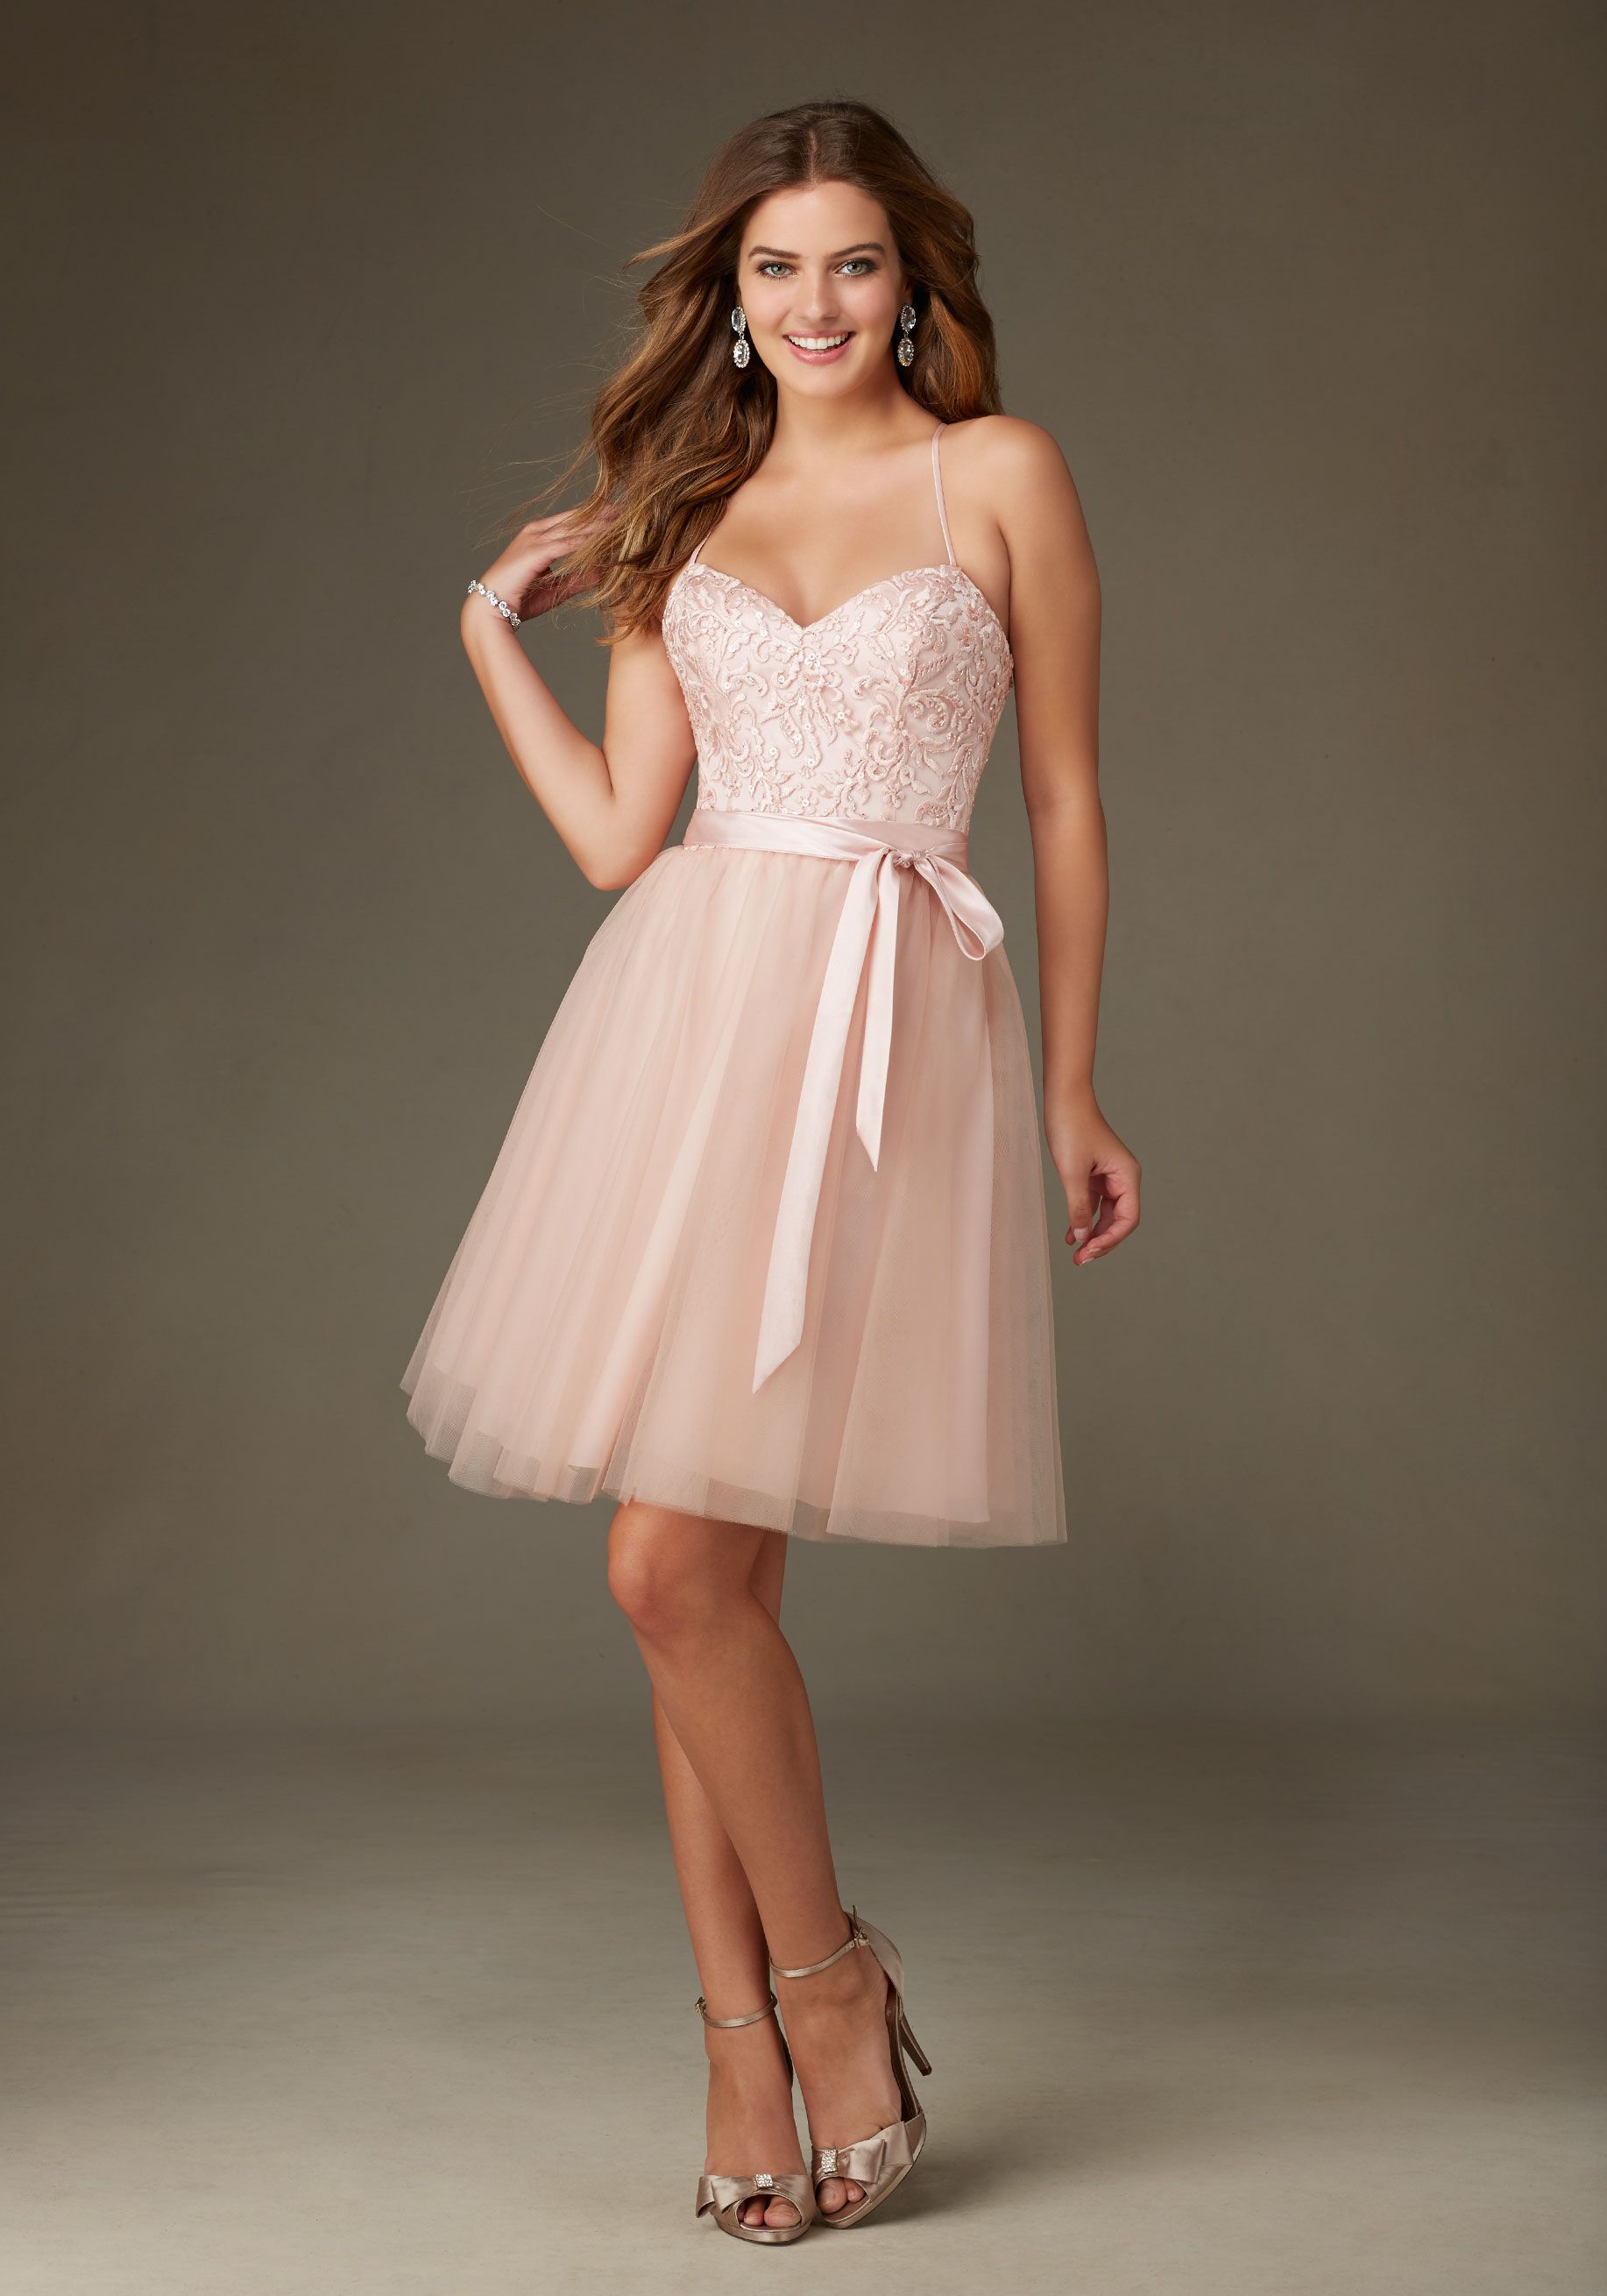 Ballerina Style Bridesmaid Dress in Tulle with Embroidery and ...